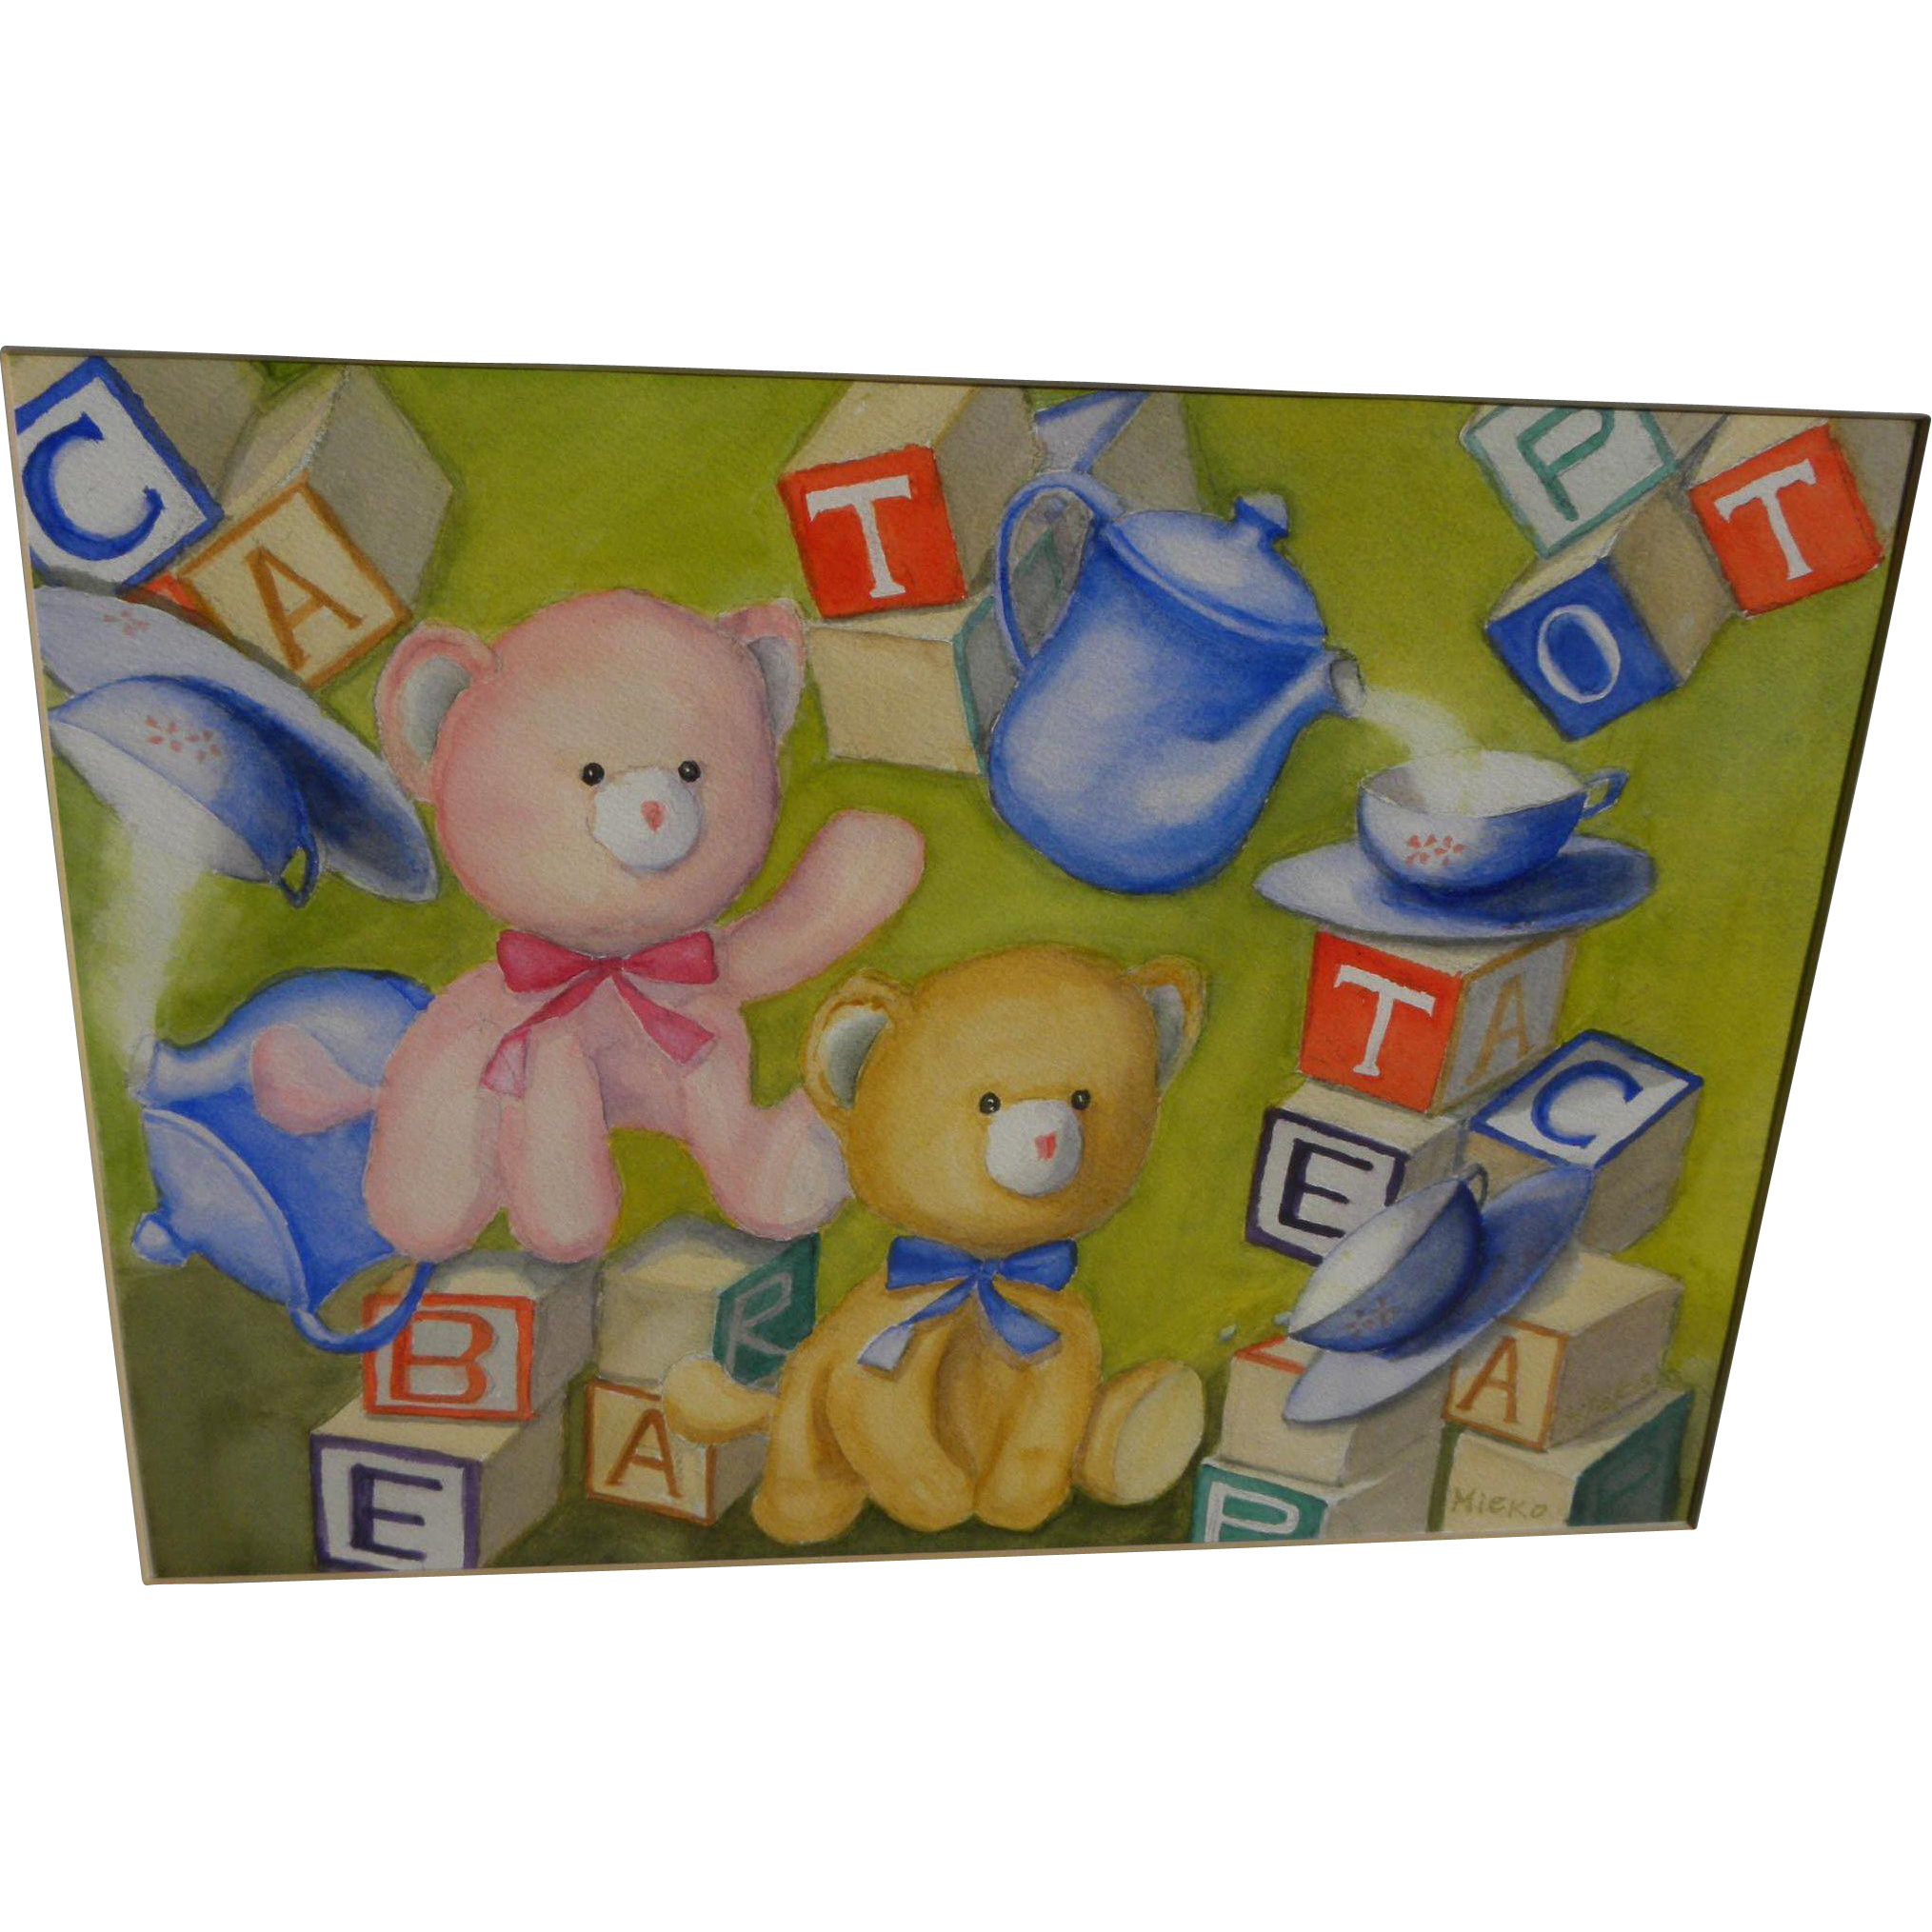 Whimsical original watercolor painting of teddy bears and children's blocks ideal for a nursery or child's room